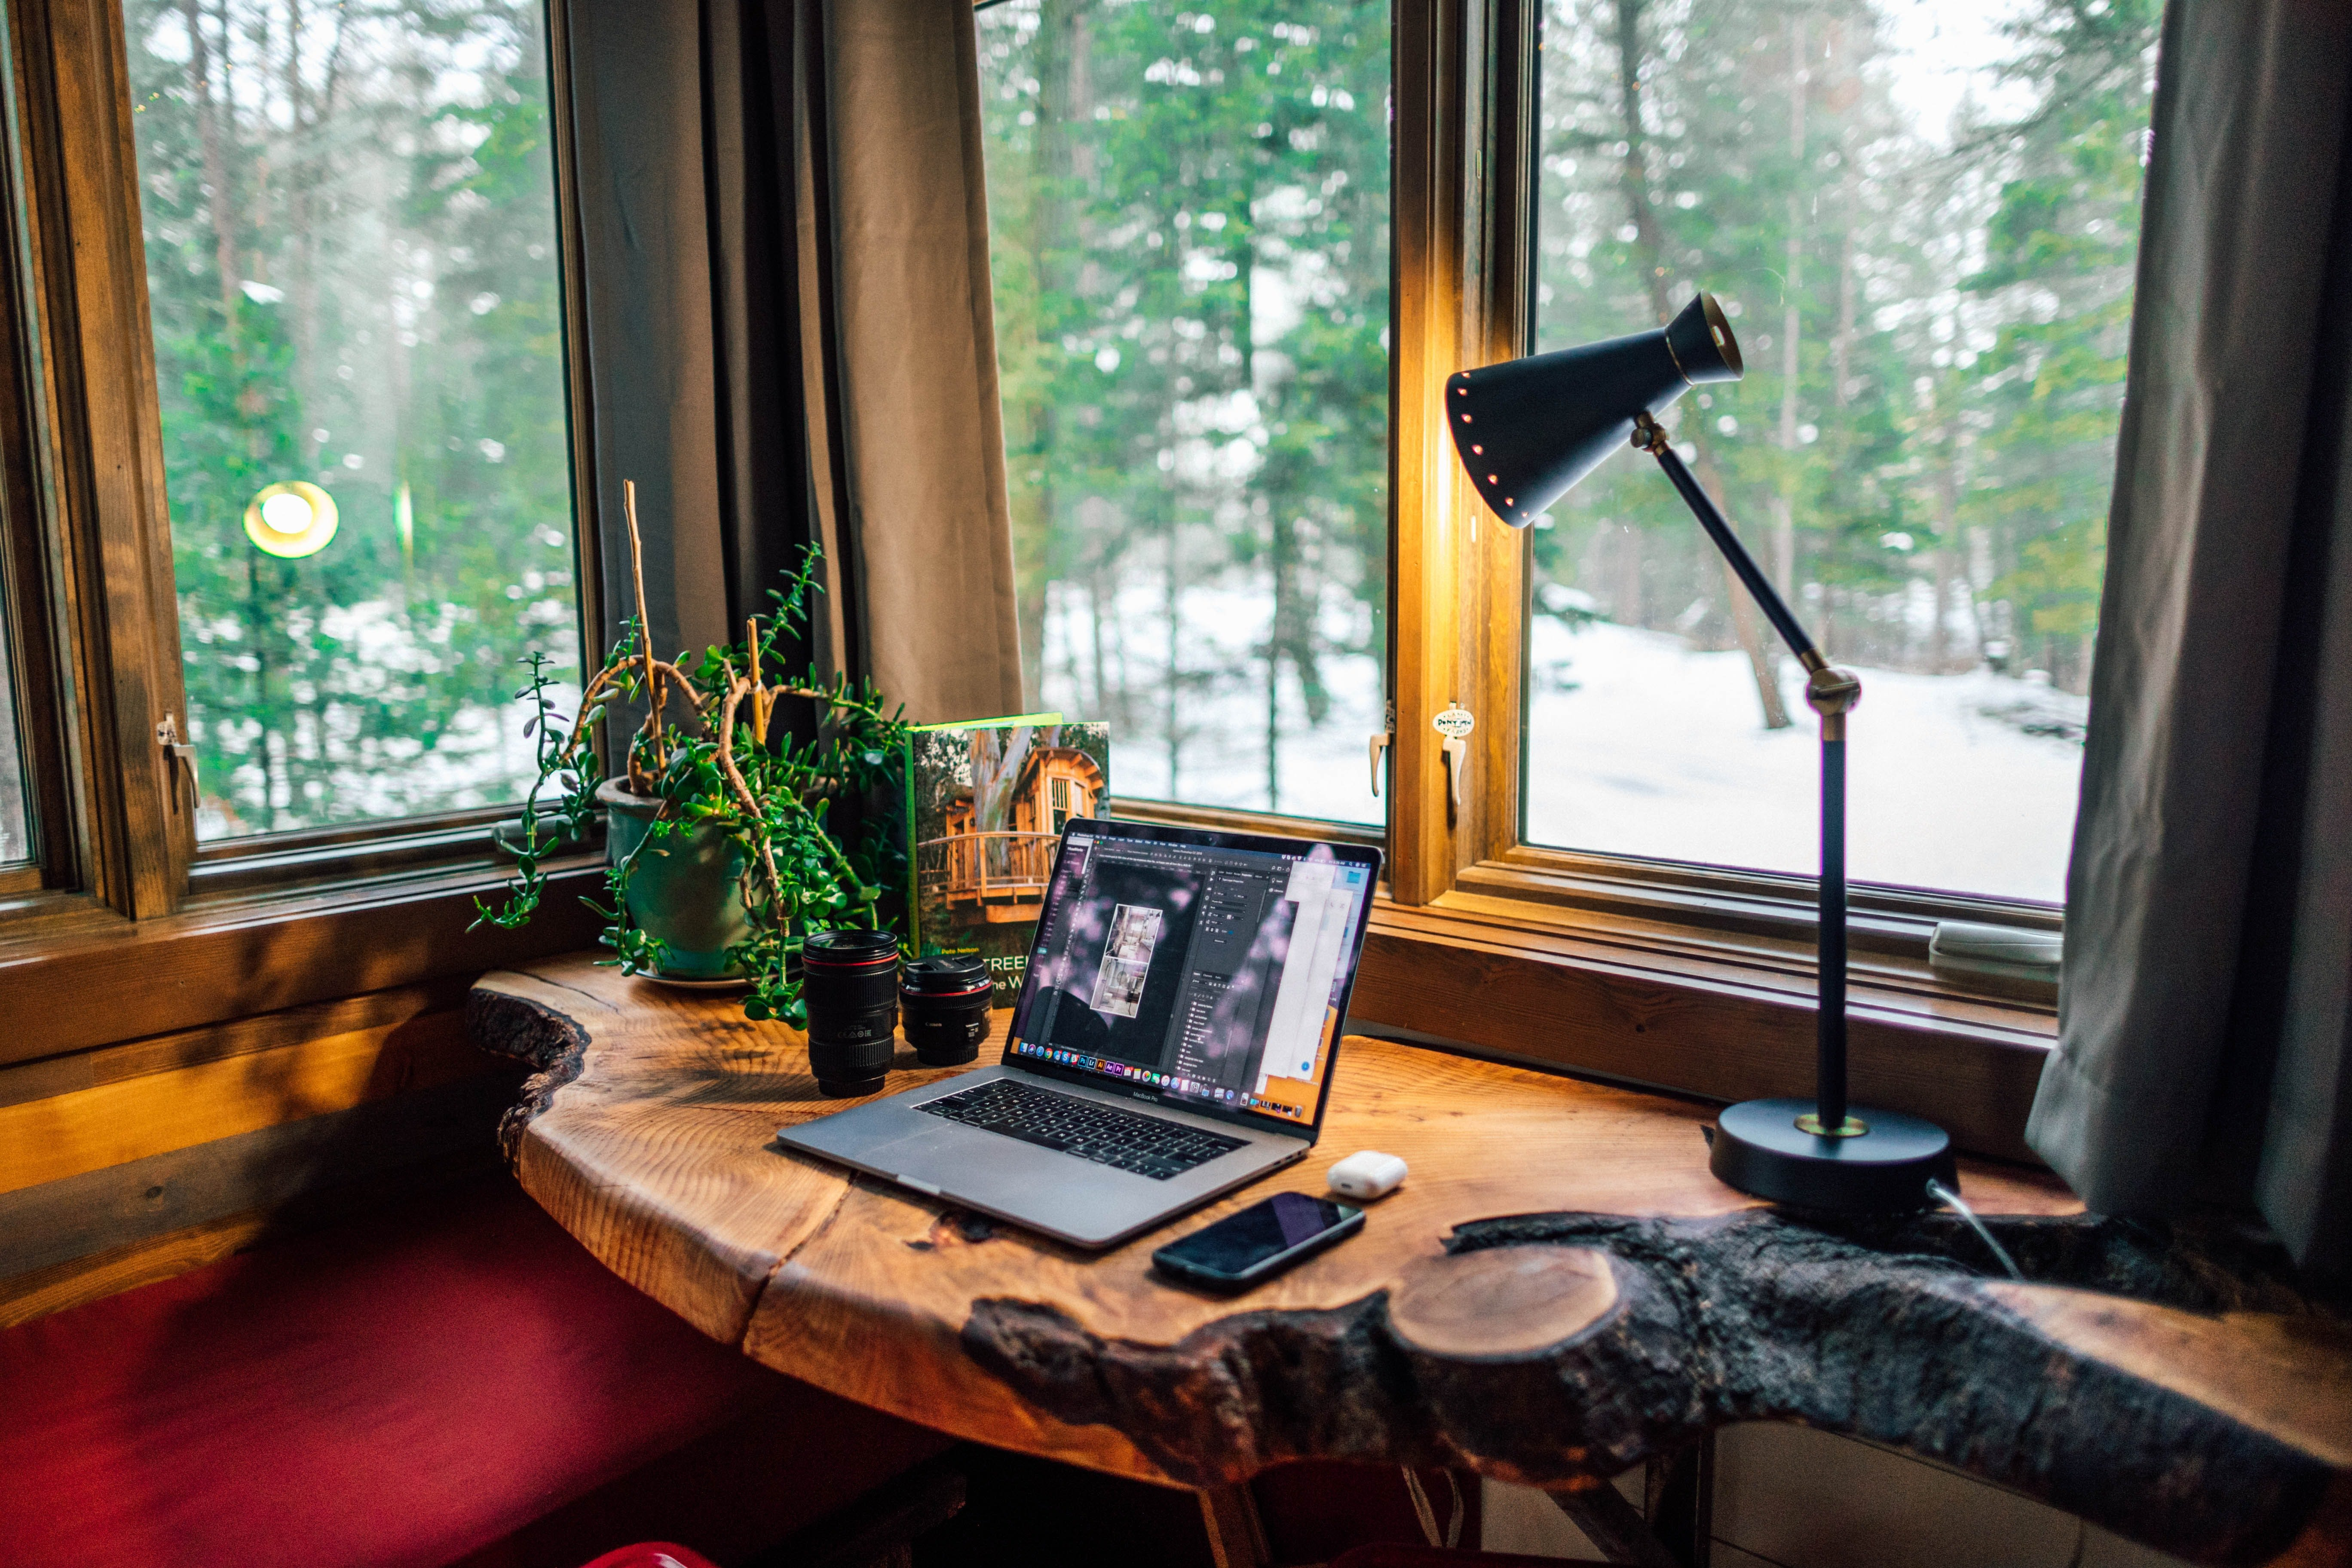 Remote work may see a surge after the COVID-19 crisis